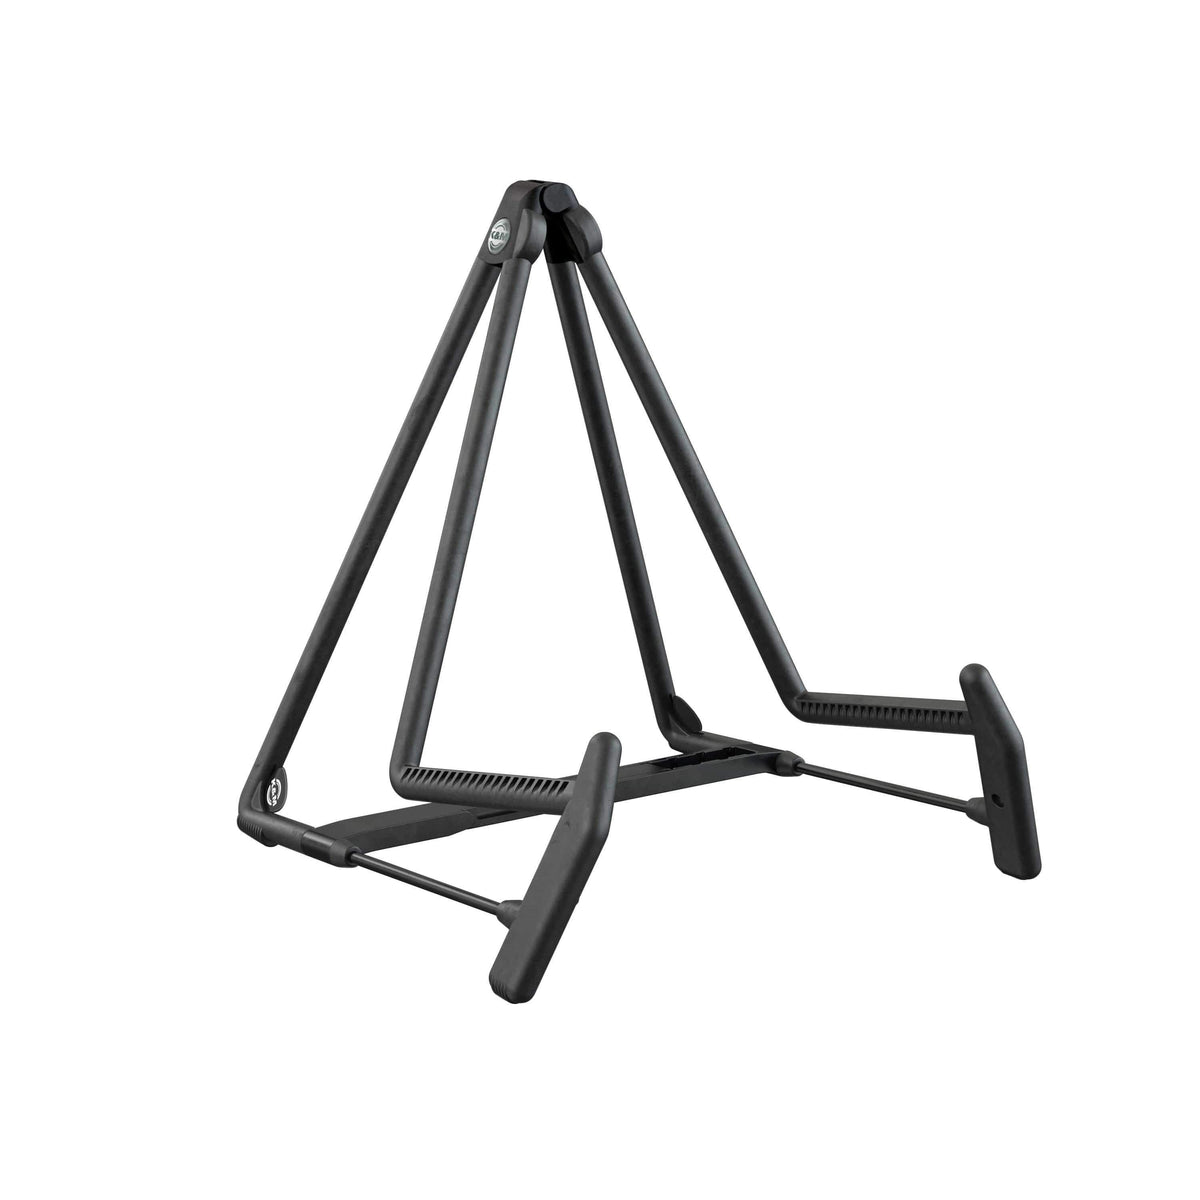 König & Meyer String Instruments K&M 17580 Acoustic Guitar Stand -Heli 2